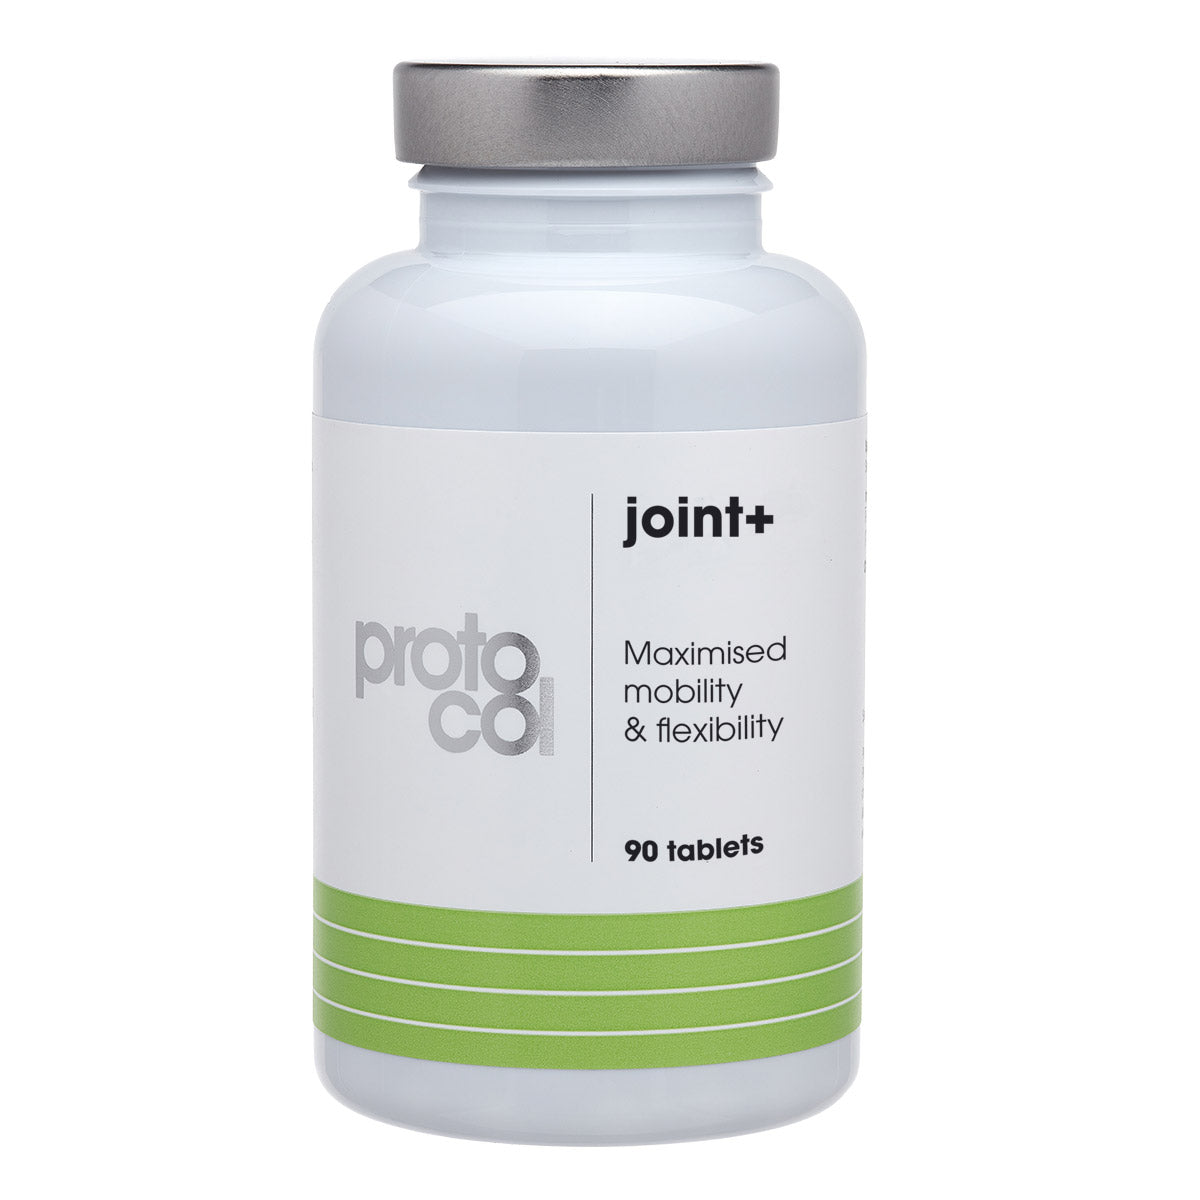 An image of Joint+